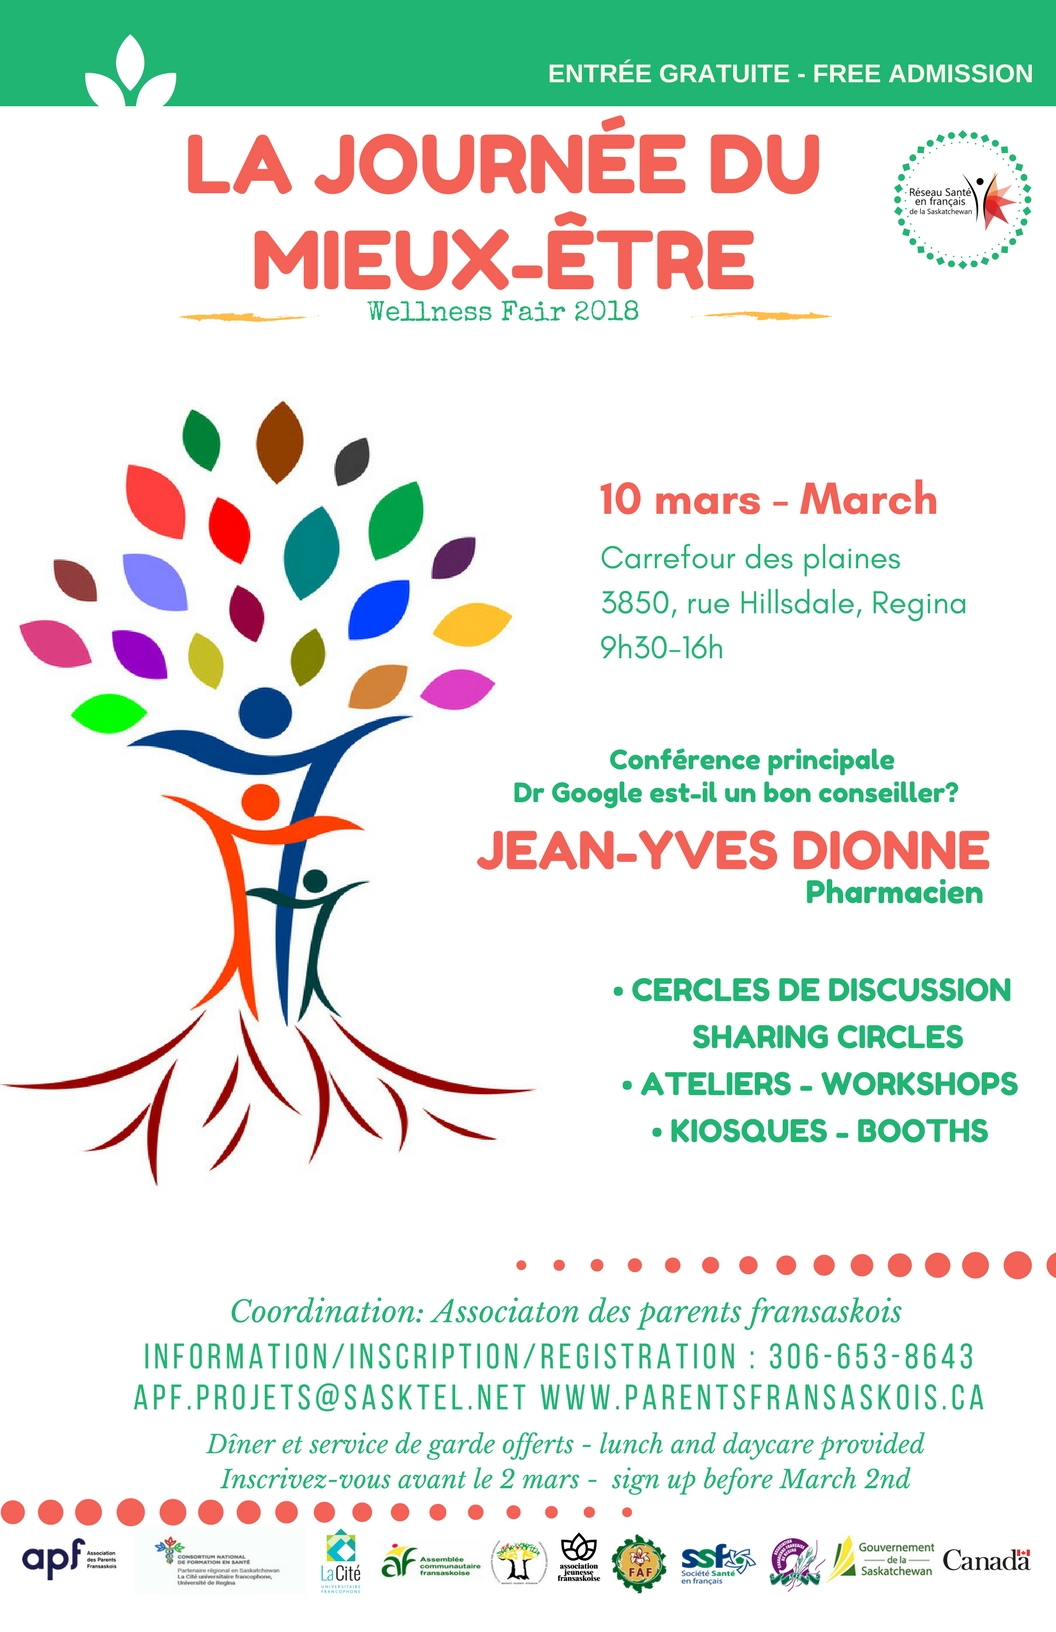 Special event in French on Saturday March 10 -  Horaire de La journée du mieux-être 2018 - Image 3